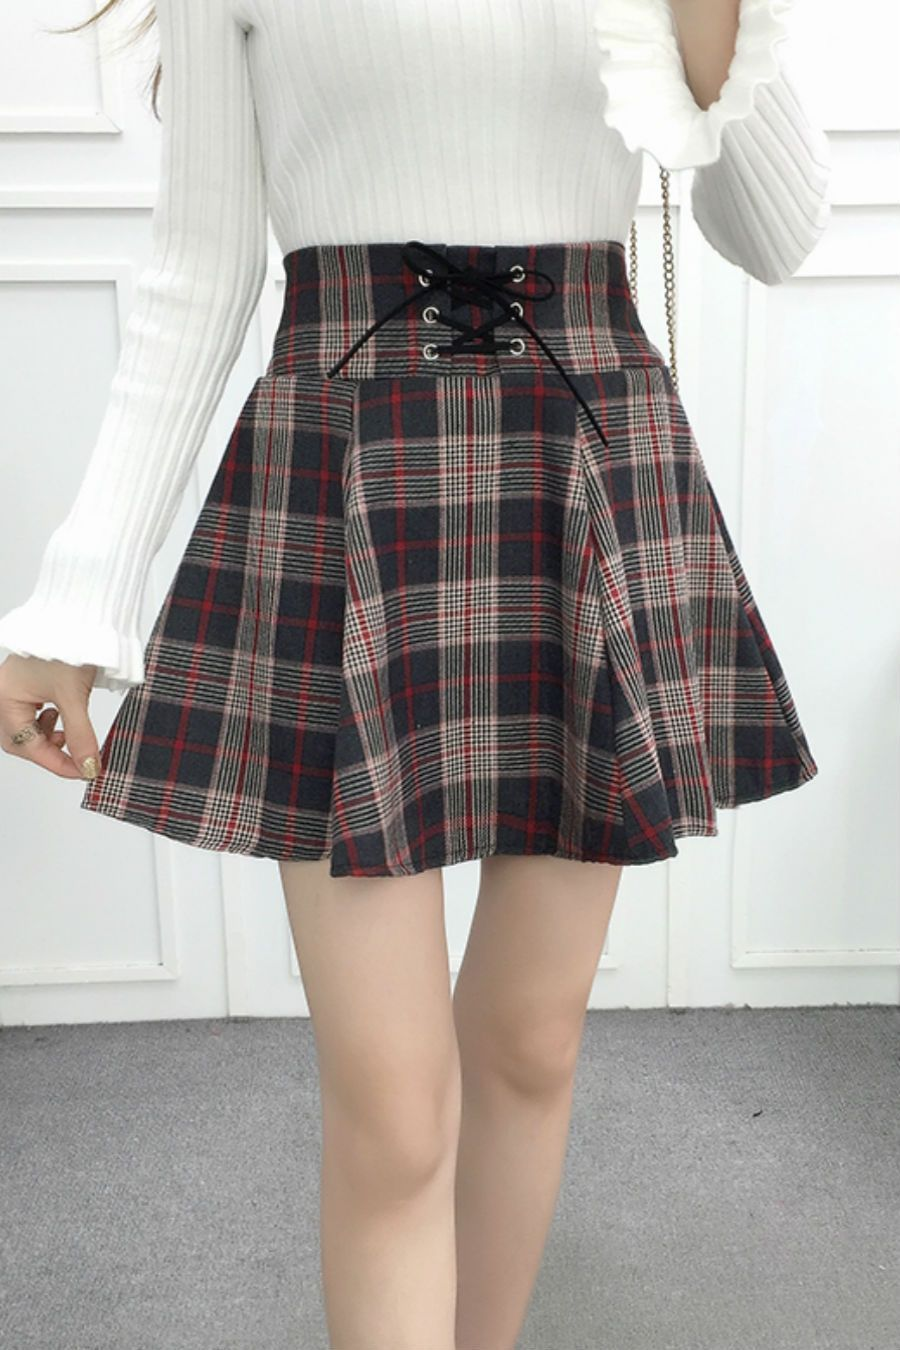 b7c32805c7 Red Tartan High Waist Skirt in 2019 | Bagpipe outfits? | High ...